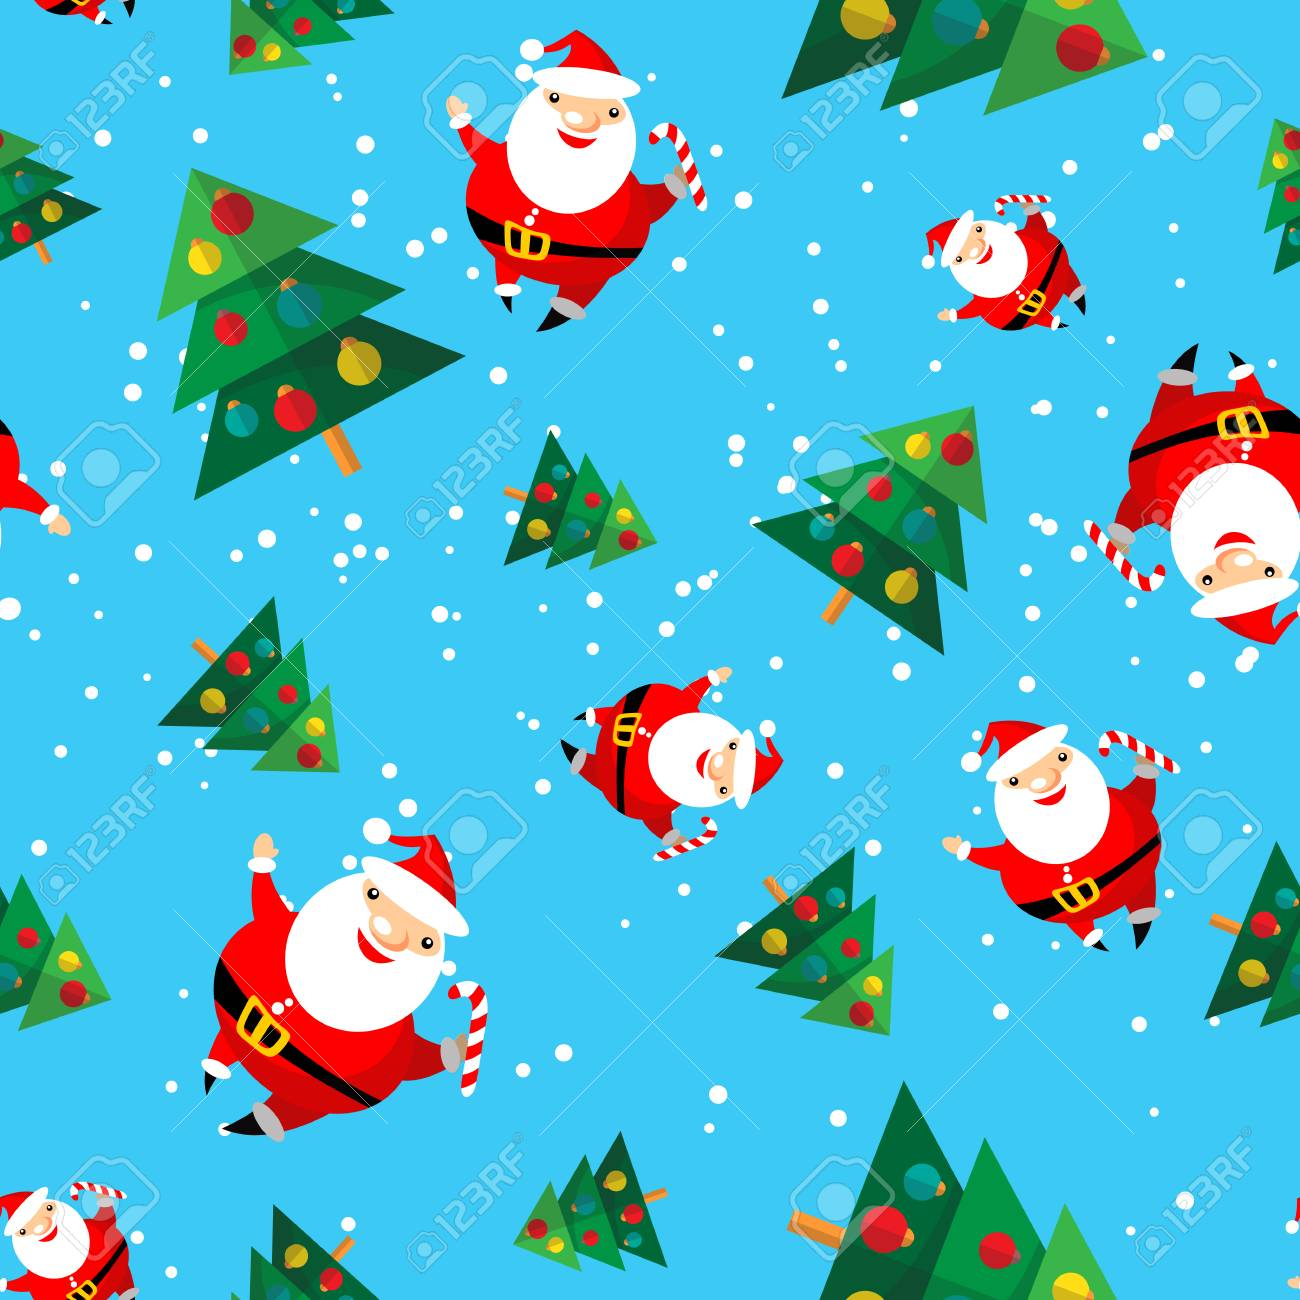 - Cartoon Happy Santa Claus With Christmas Tree On Blue Background